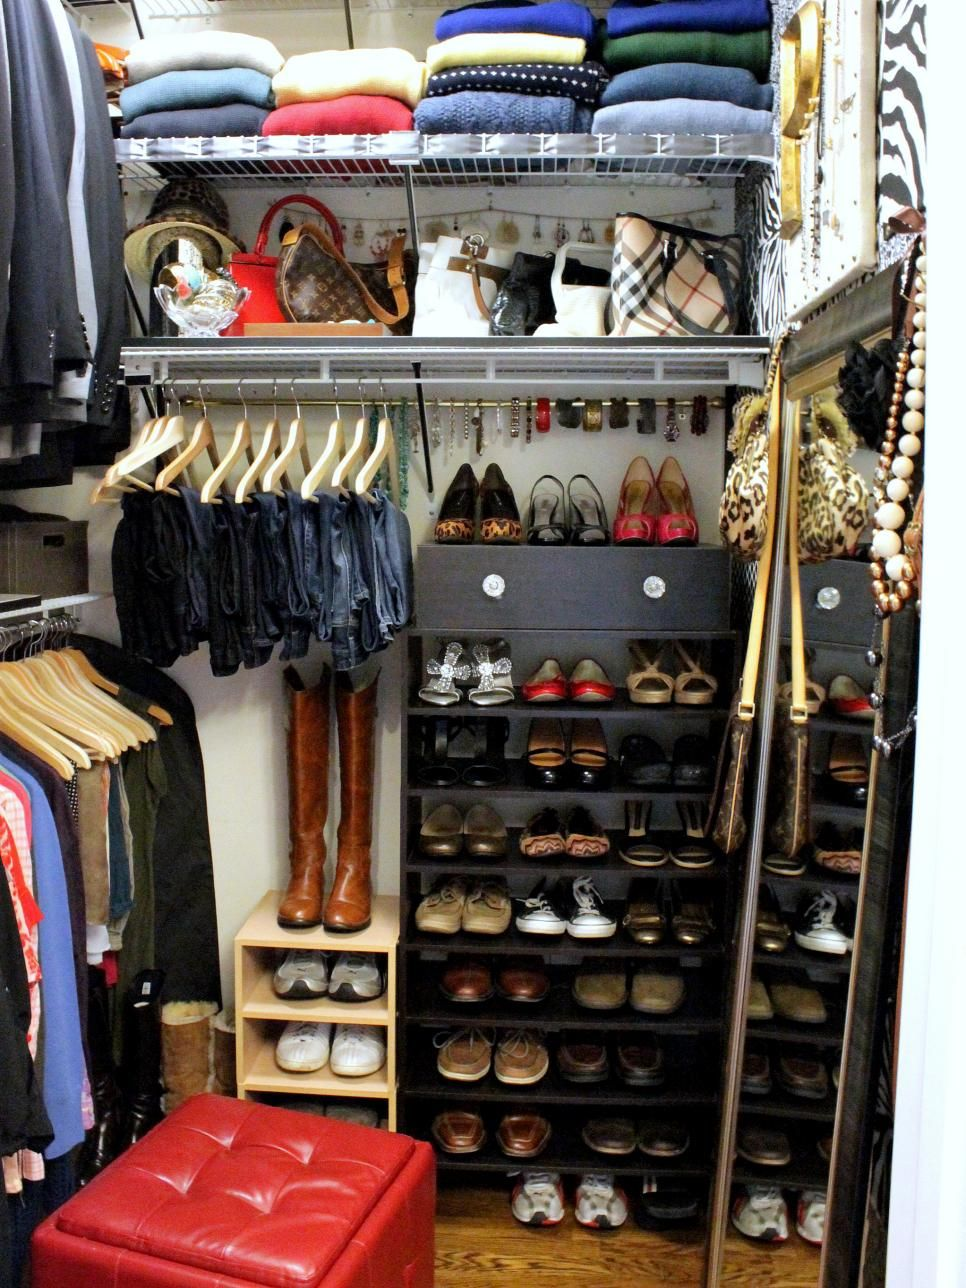 Storing Shoes In Your Closet Can Take Up A Lot Of Room But These Shoe Organizer Ideas Will Keep Organized While Saving E